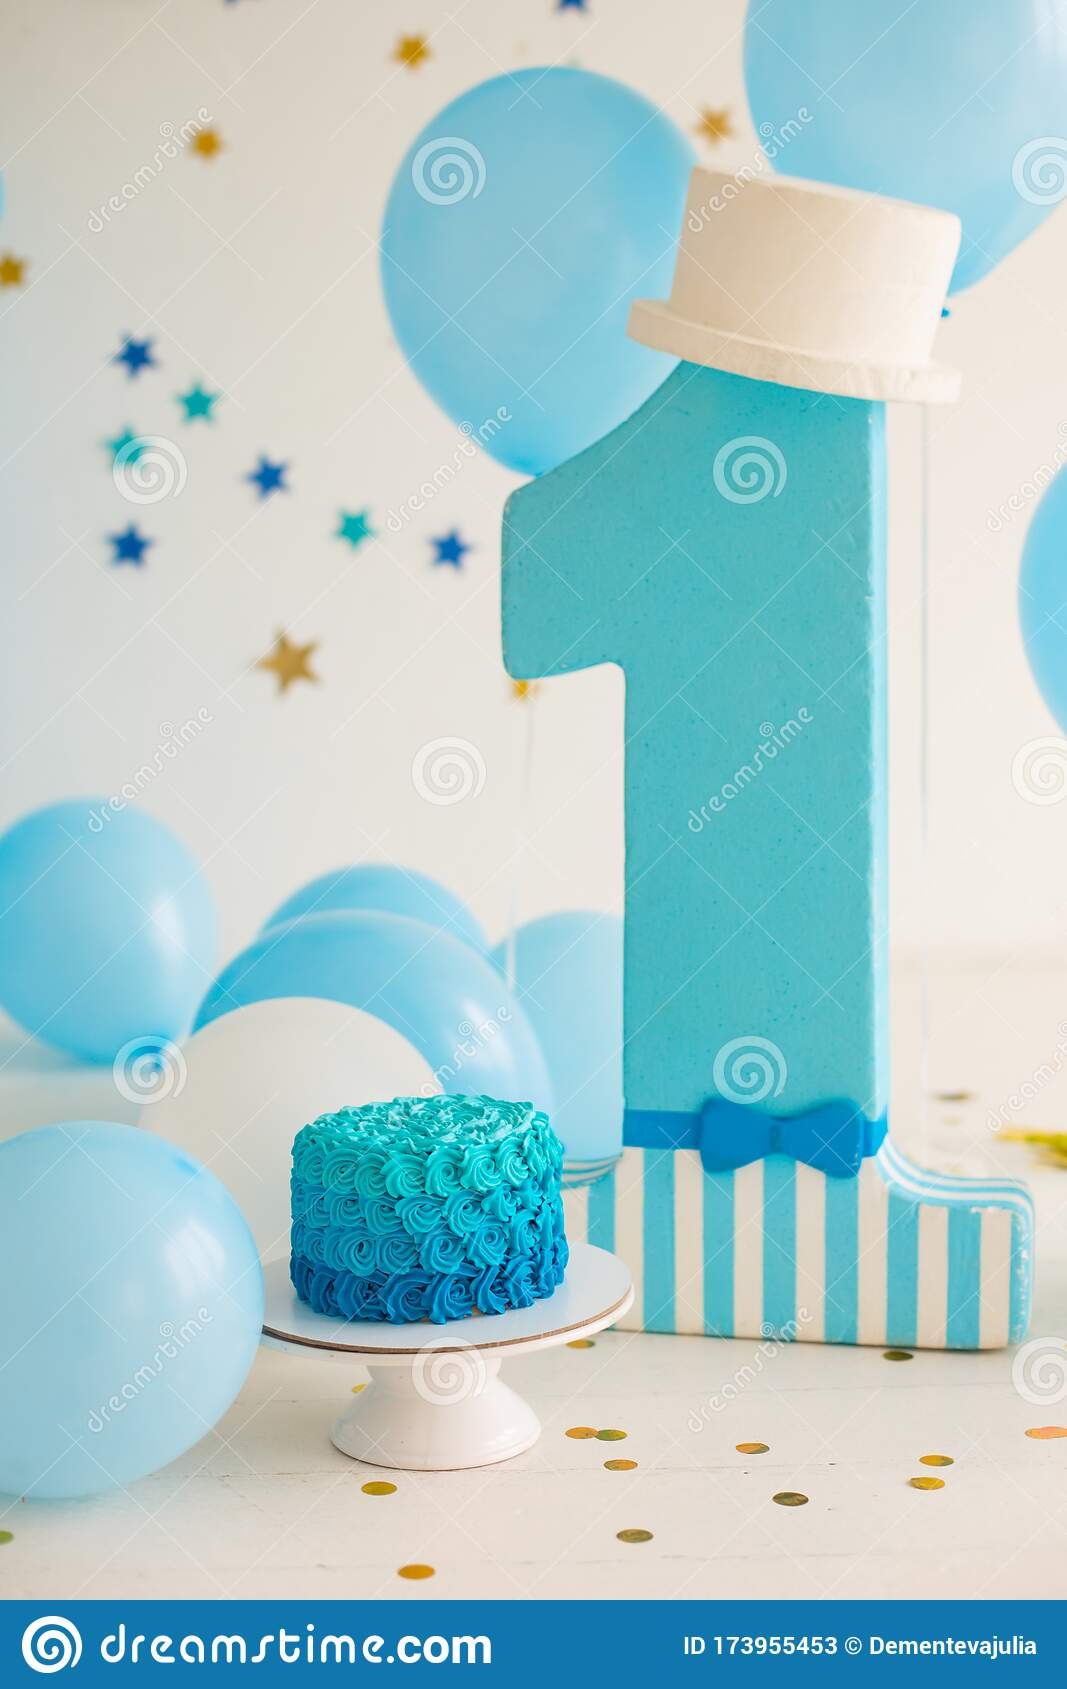 Remarkable First Birthday Cake For Boy Stock Image Image Of Decor Dessert Funny Birthday Cards Online Elaedamsfinfo